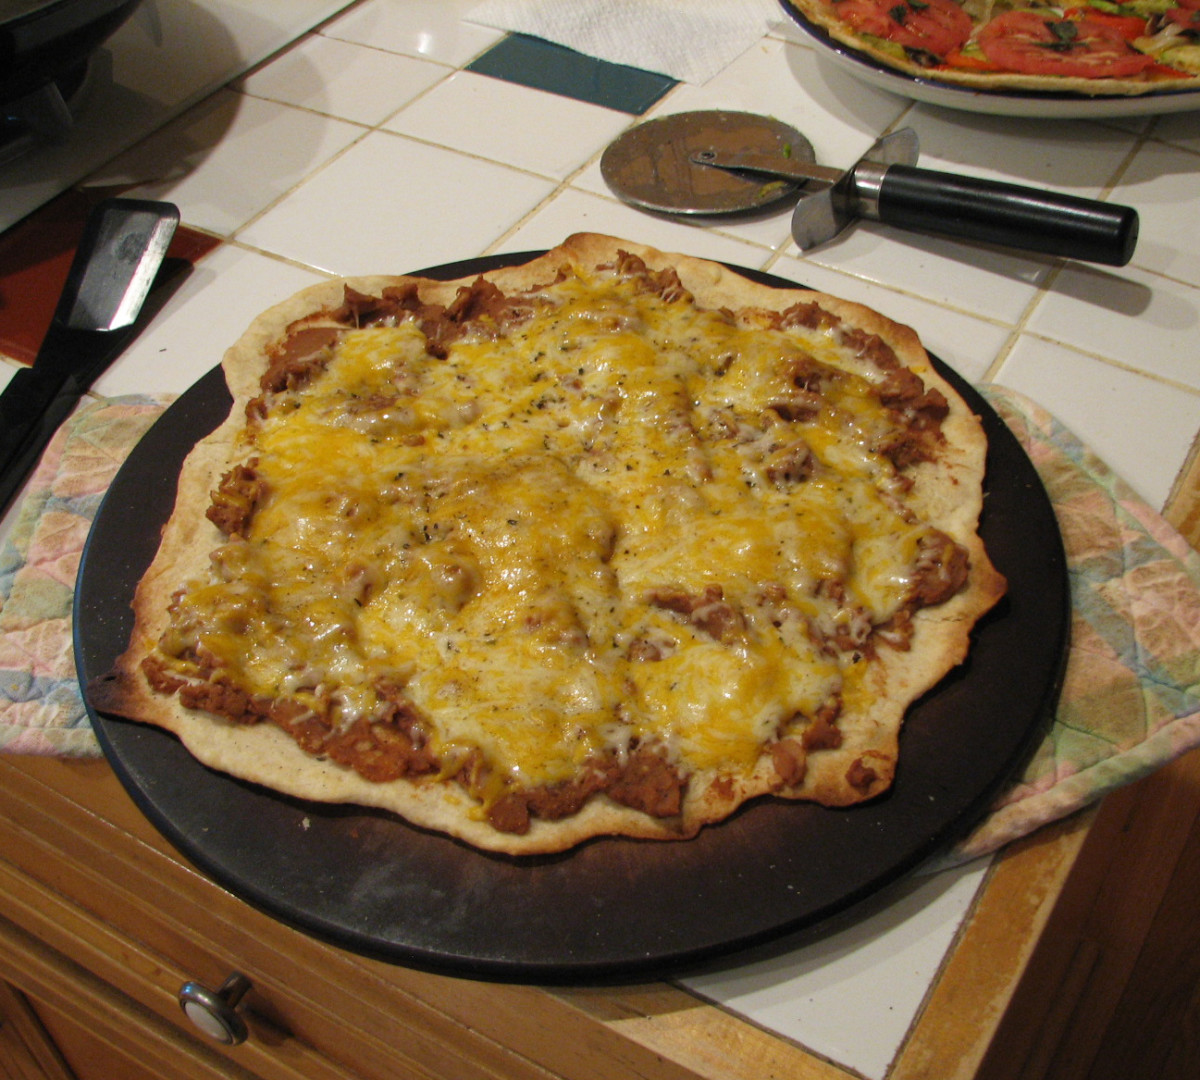 Tex-mex version, refried beans and cheese